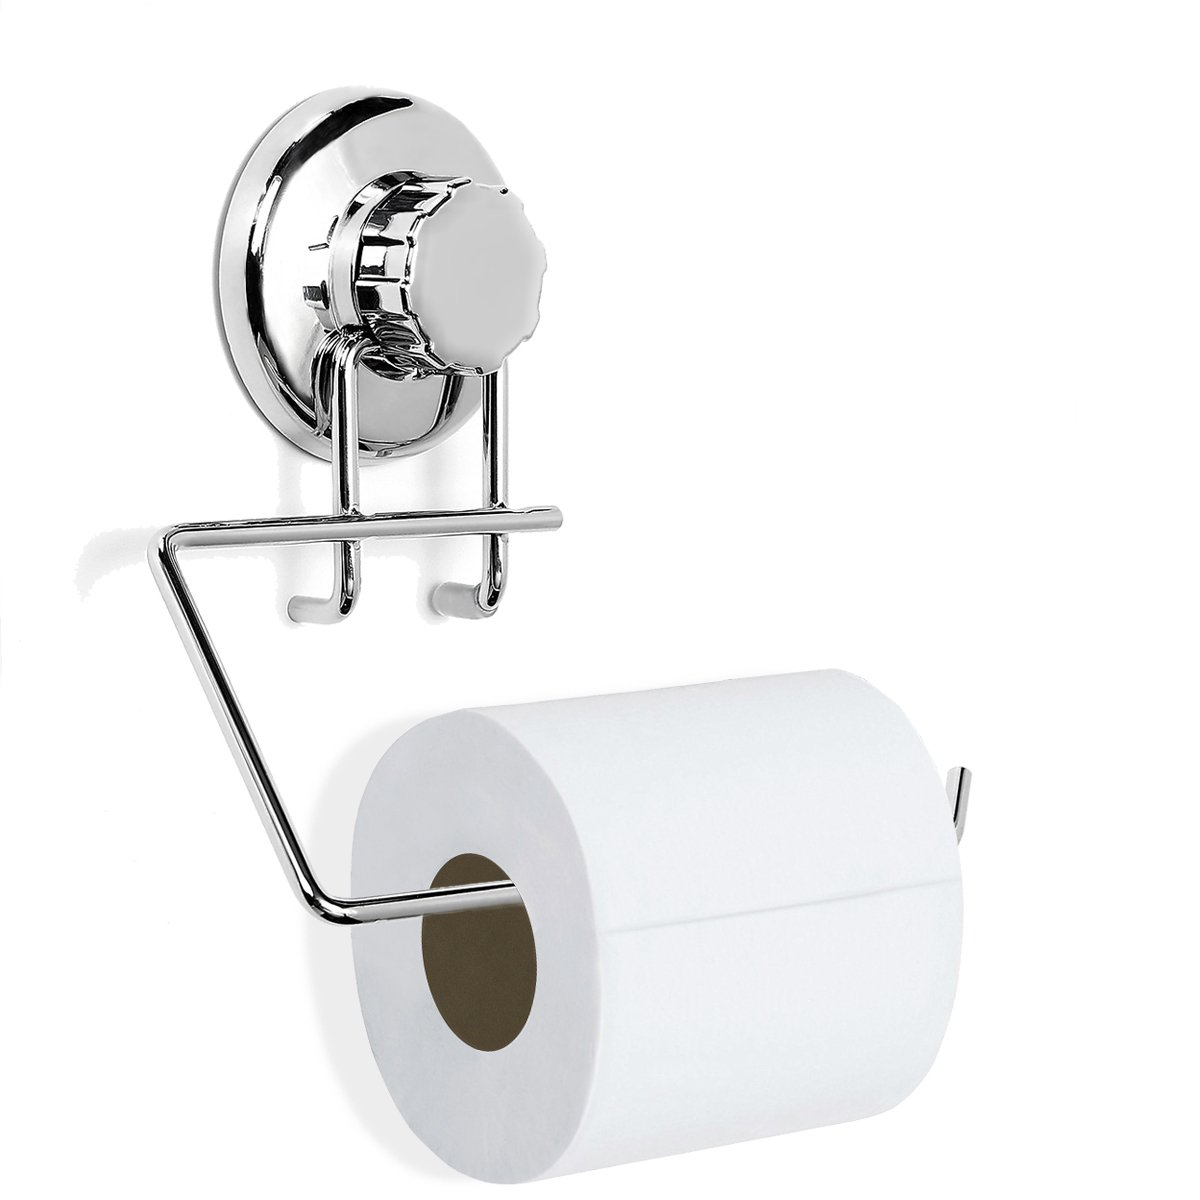 TAPCET Toilet Roll Holder No-Drilling Suction Toilet Roll Holder Bathroom Tissue Holder for Stainless Steel Towel Hanger with Suction Cup Bathroom Kitchen